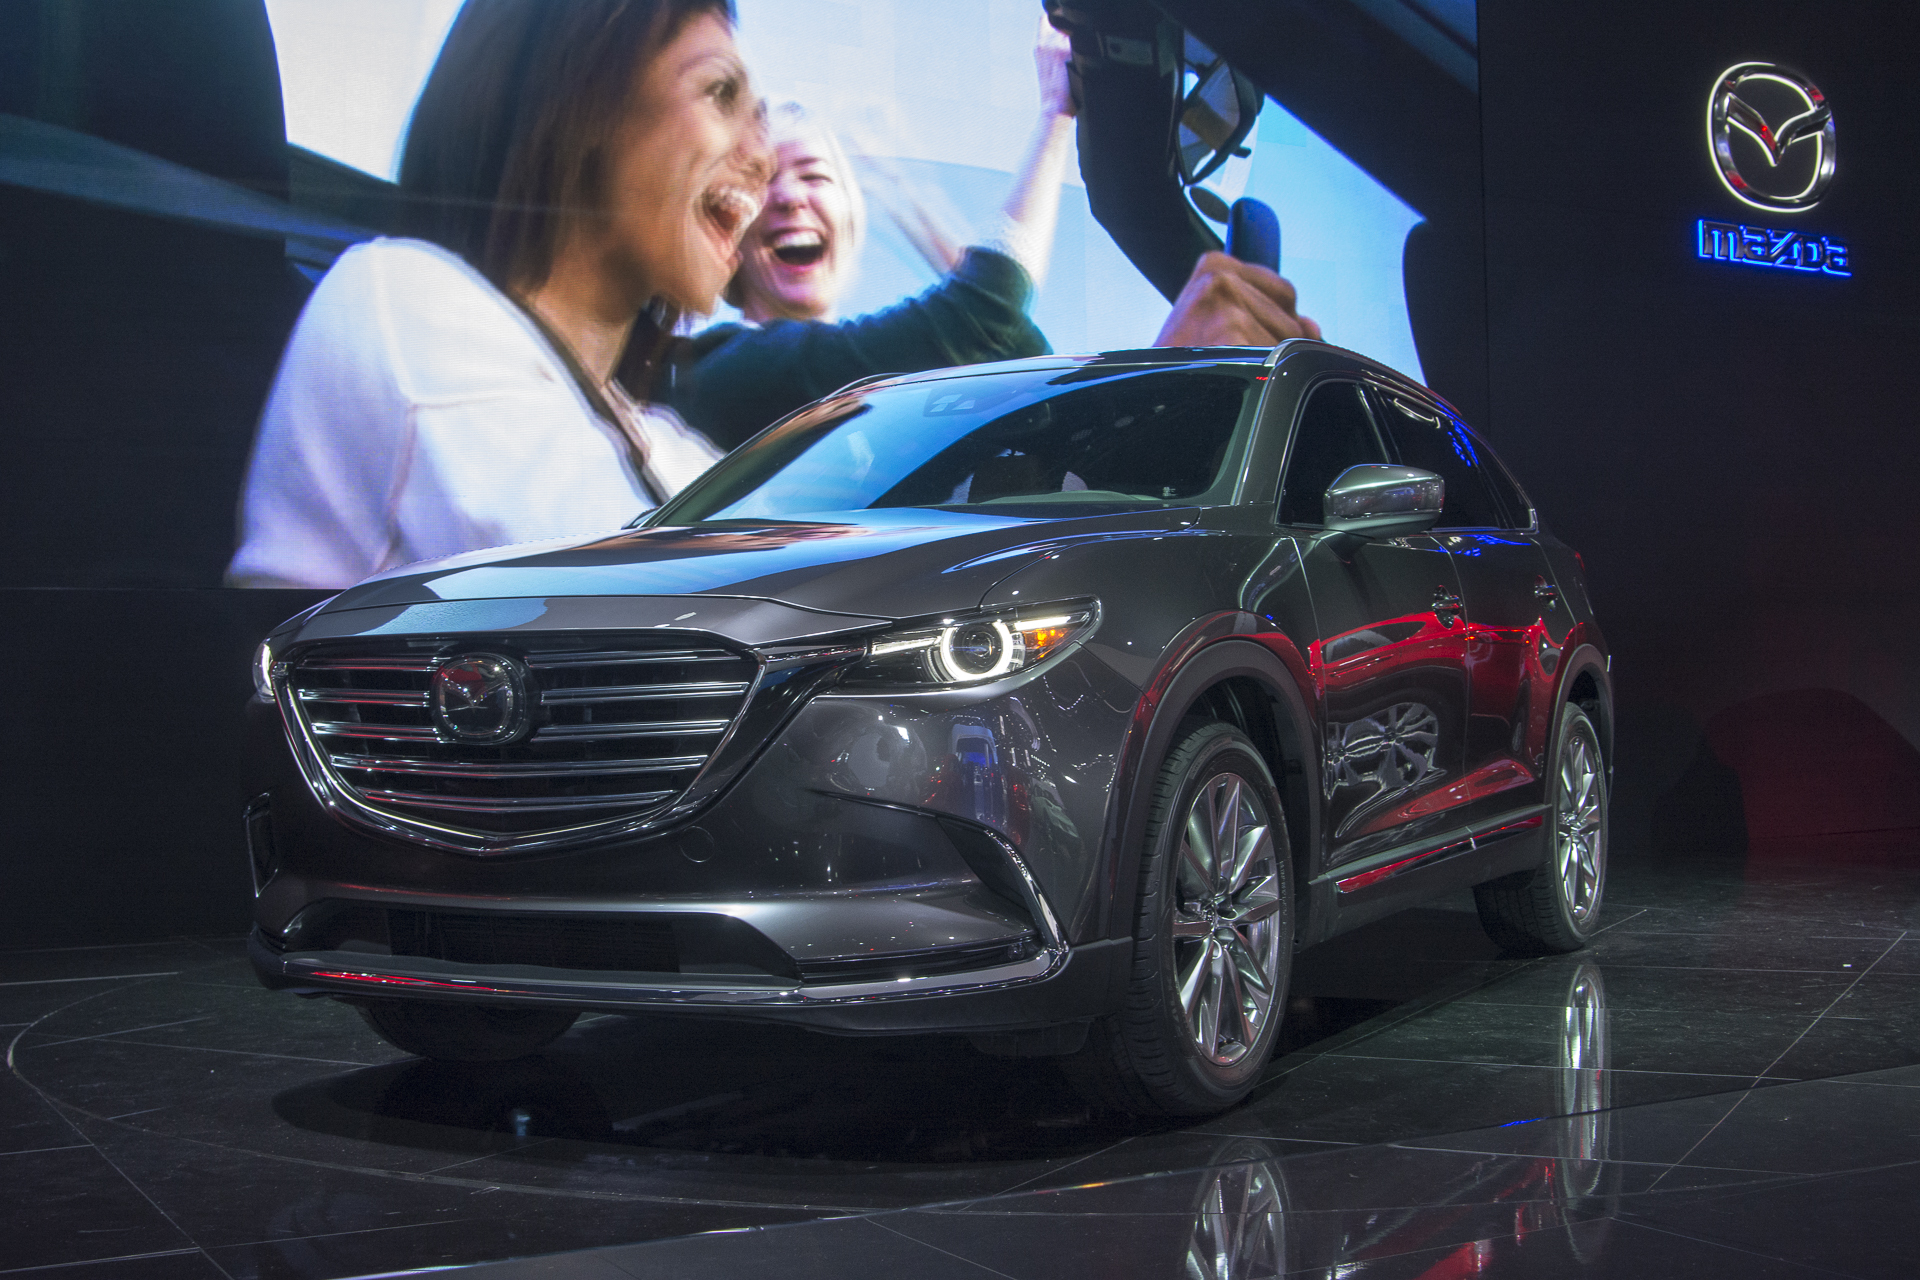 mazda cx-9 prices, reviews and new model information - autoblog